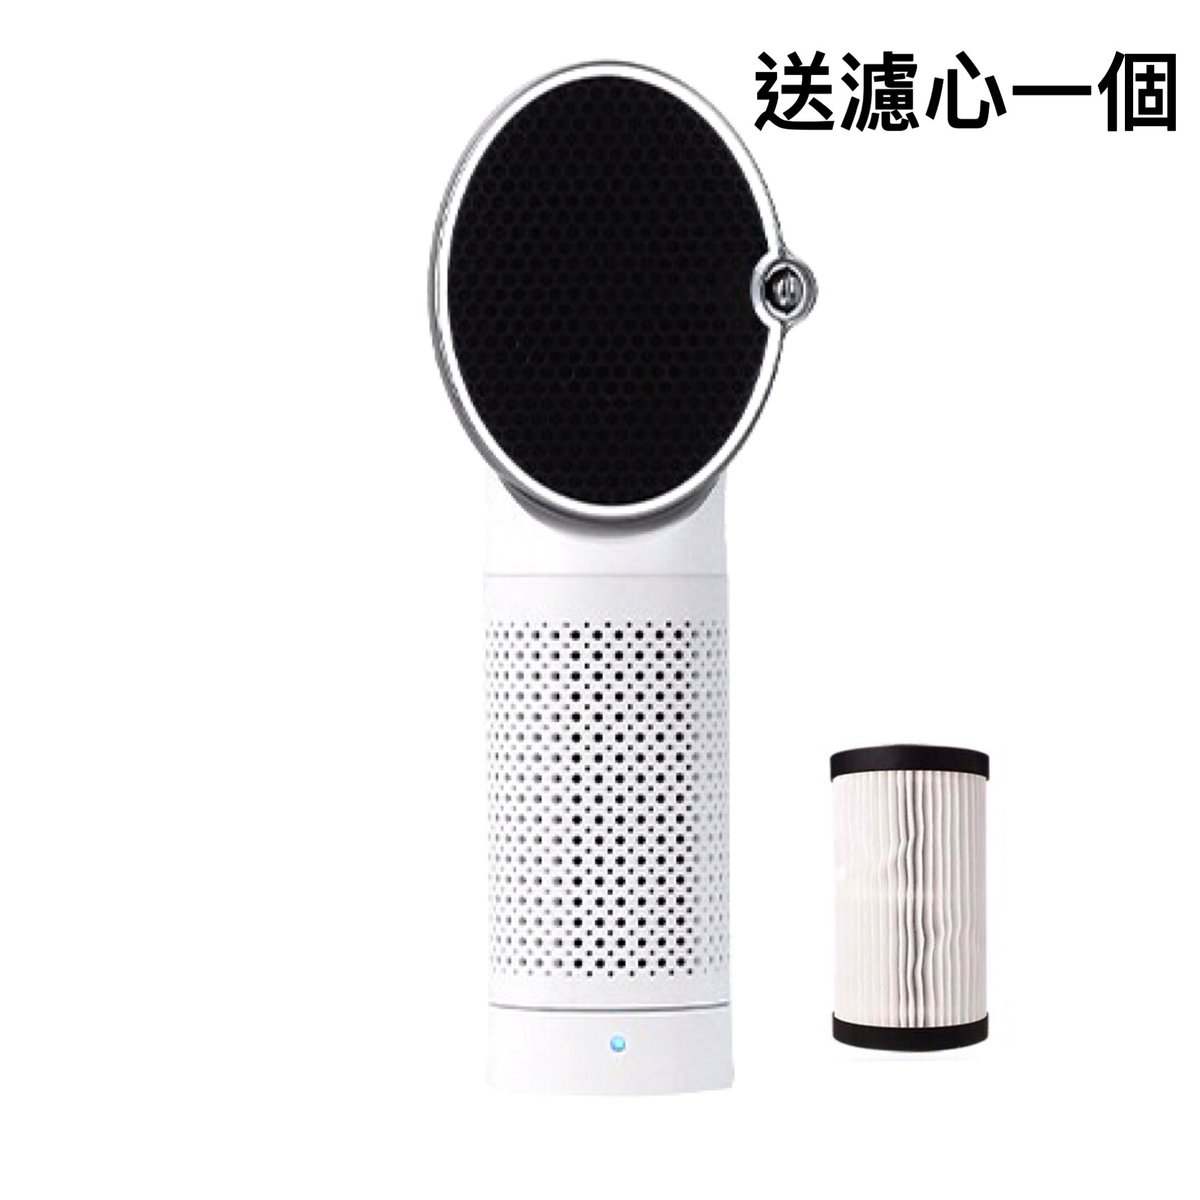 Net Beauty - Office Desktop Air Cleaner (Includes a replaceable filter)